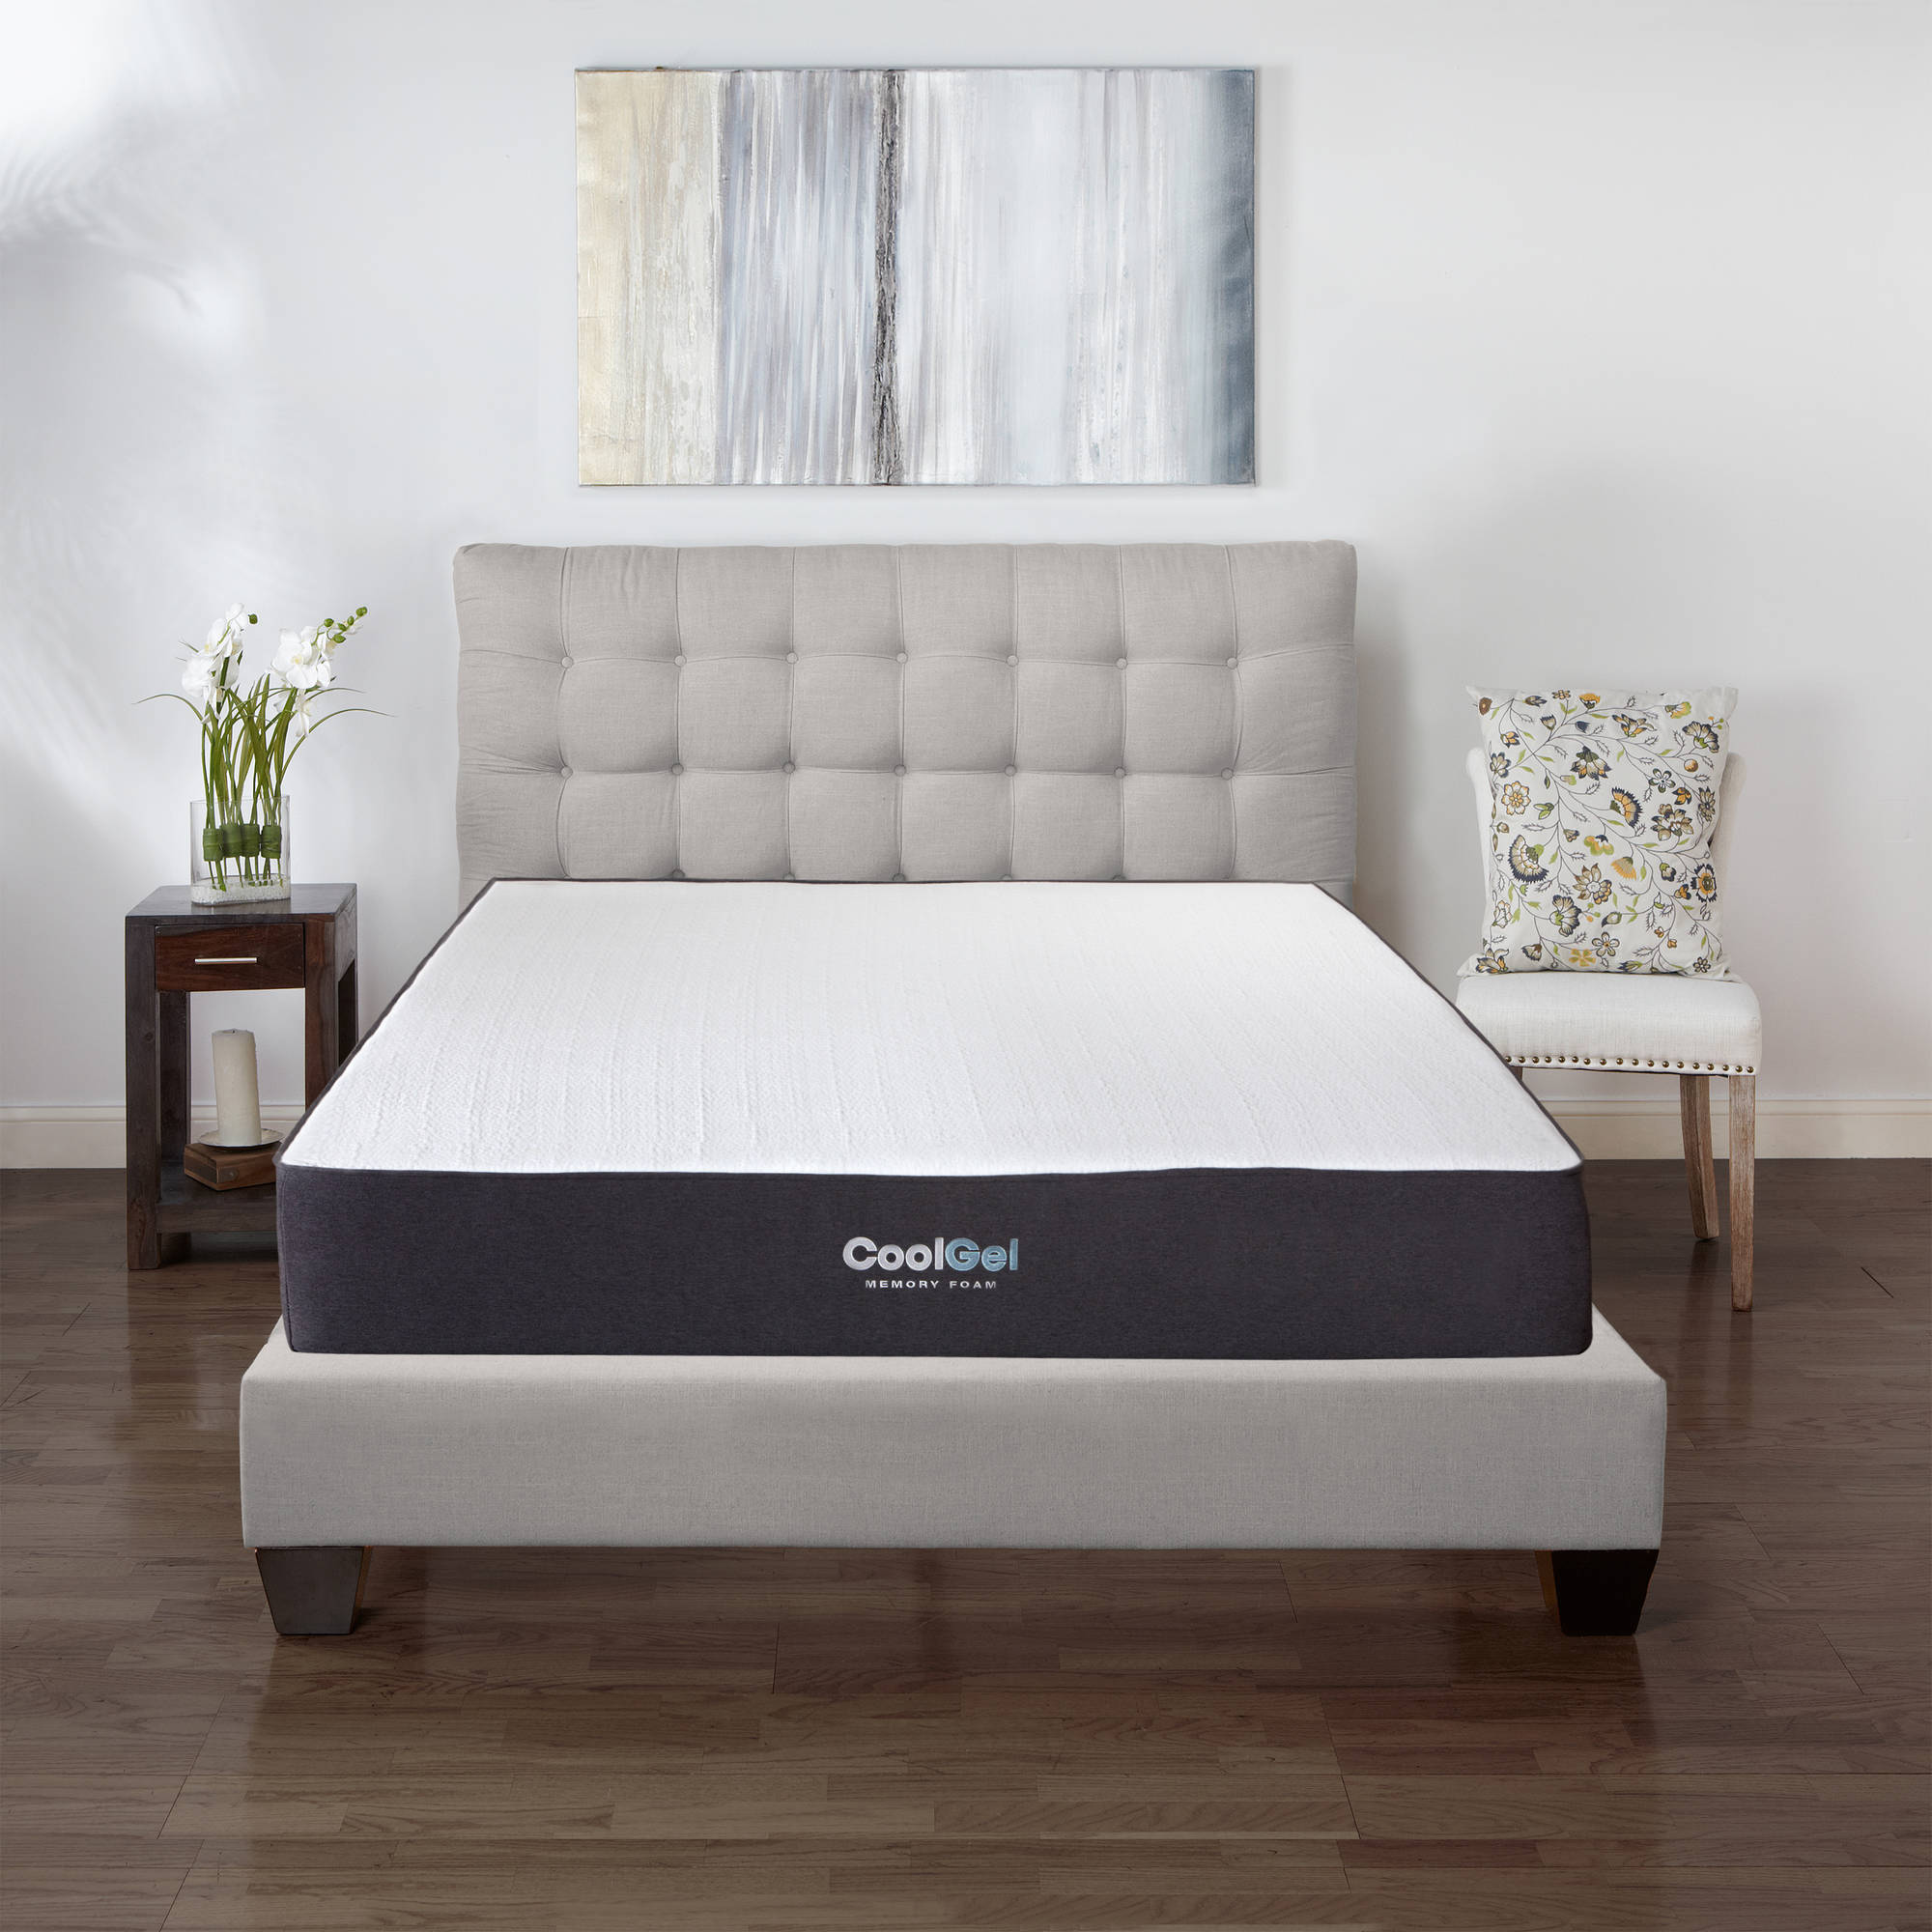 cool gel 105 ventilated gel memory foam mattress multiple sizes walmartcom